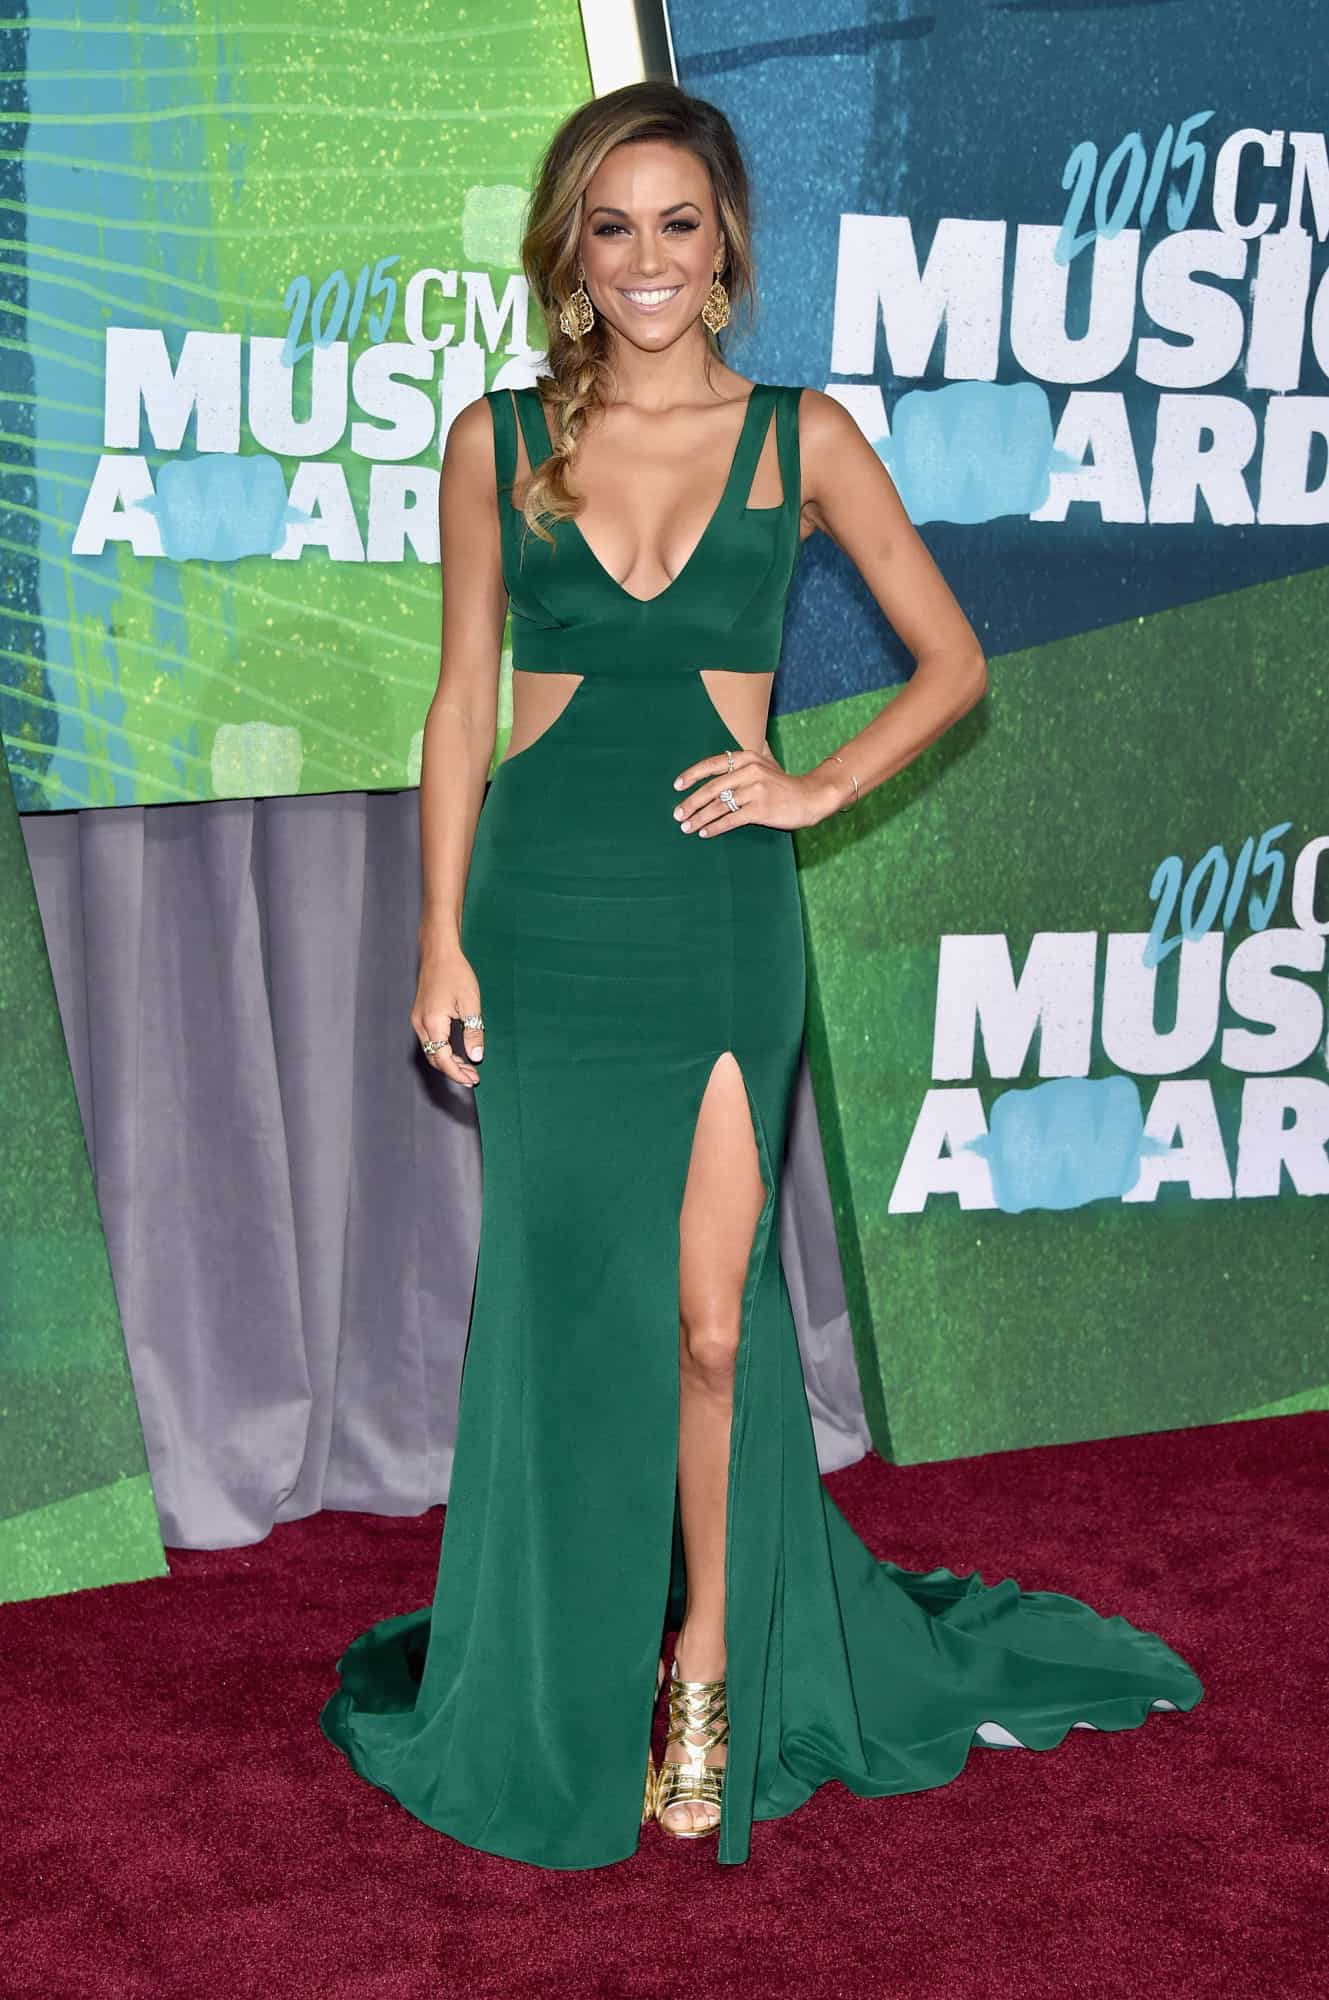 2015 Cmt Country Music Awards Delica Bridal